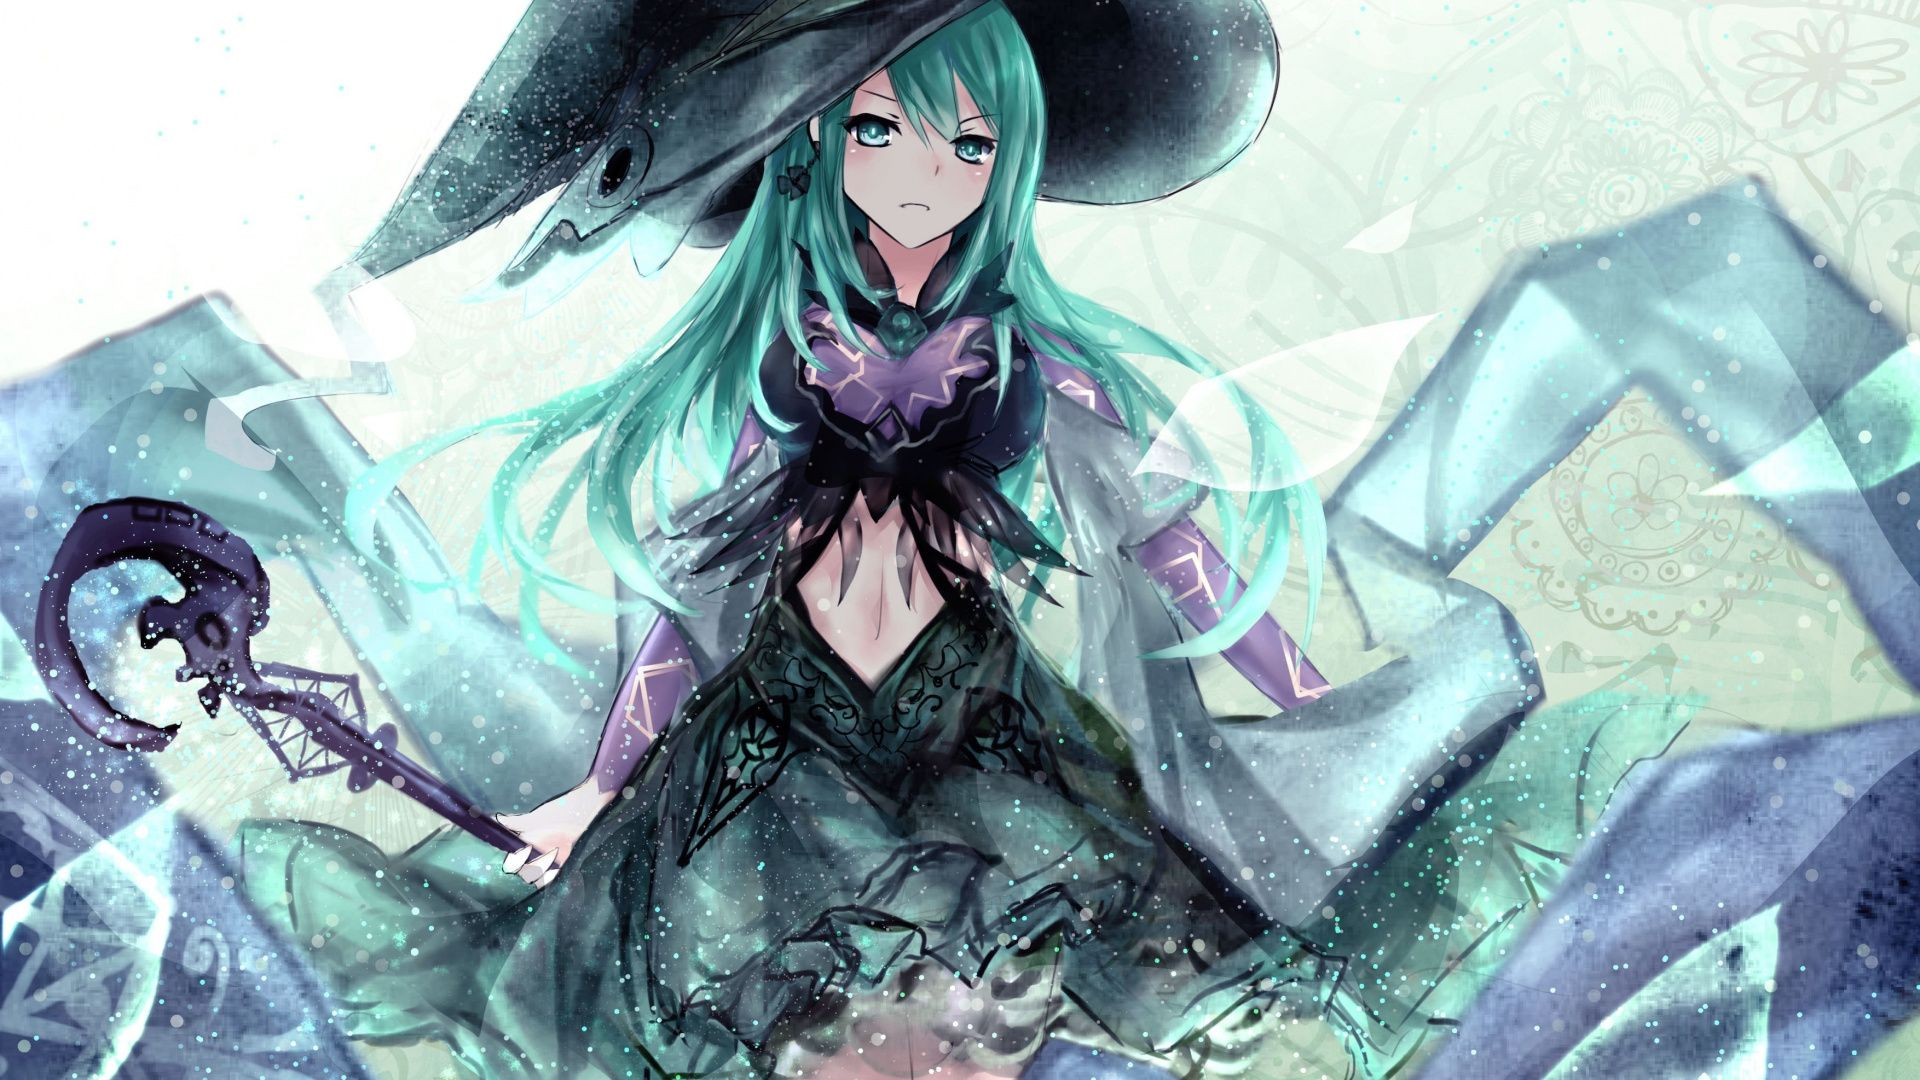 Download 1920x1080 wallpaper Witch, Natsumi, Date A Live